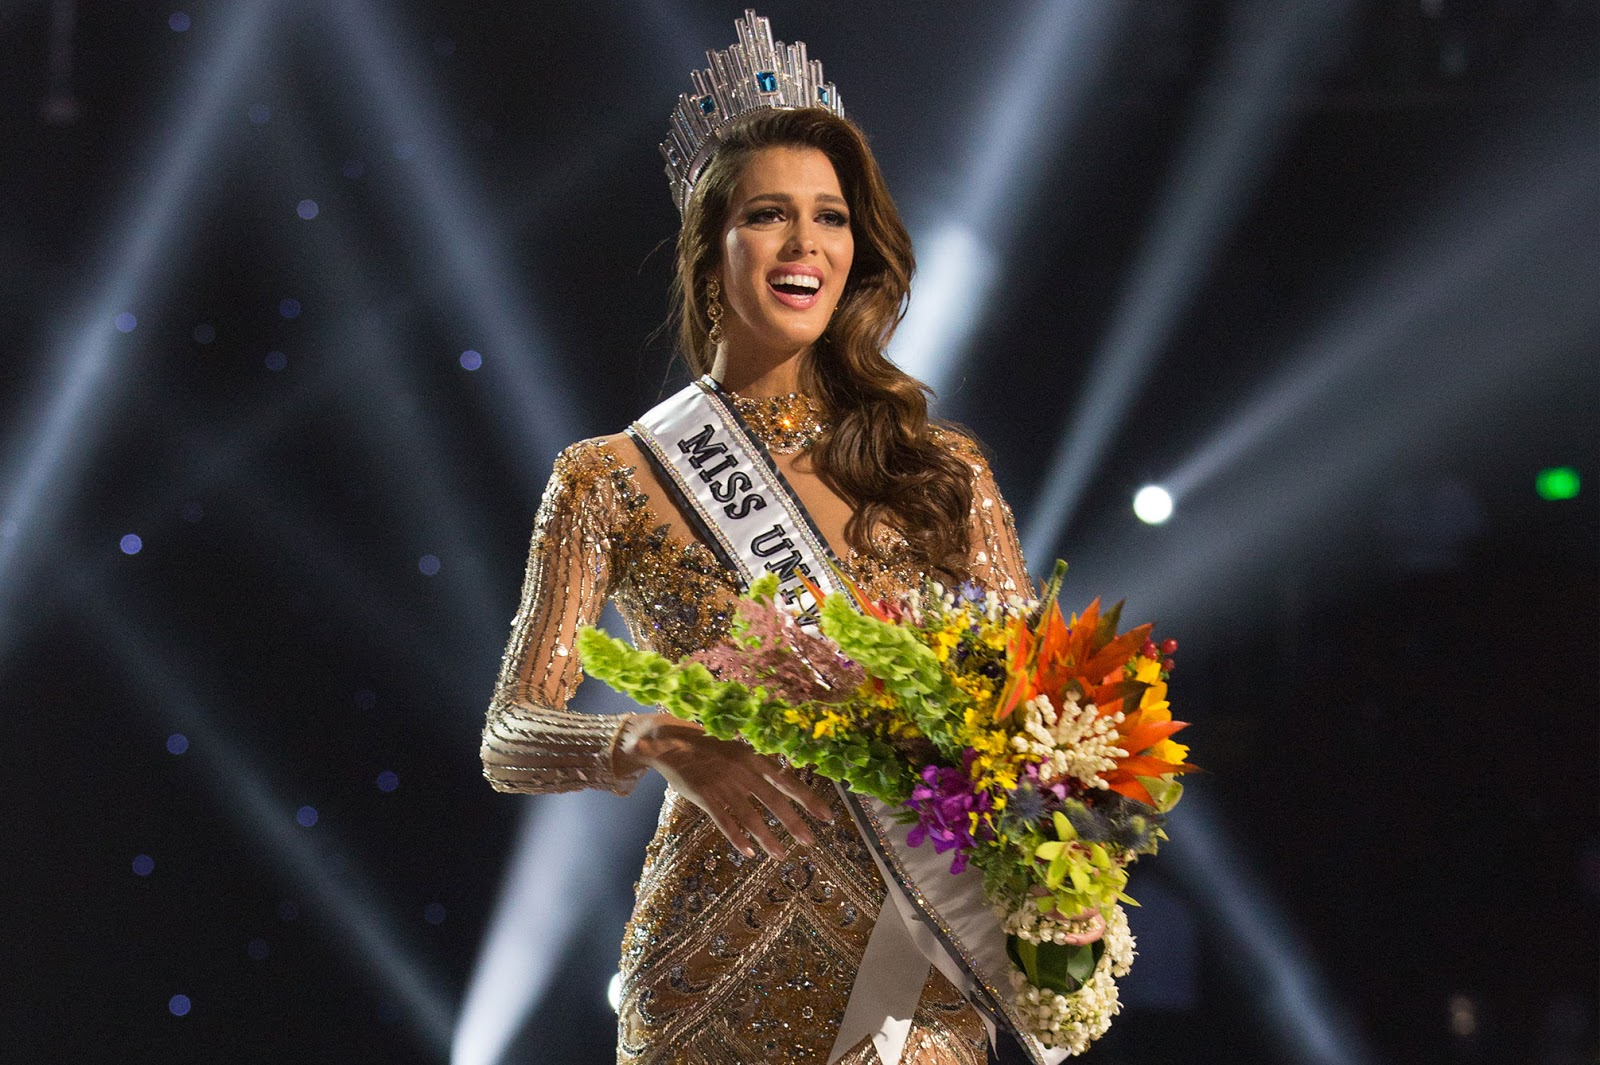 Miss France is crowned Miss Universe 2016